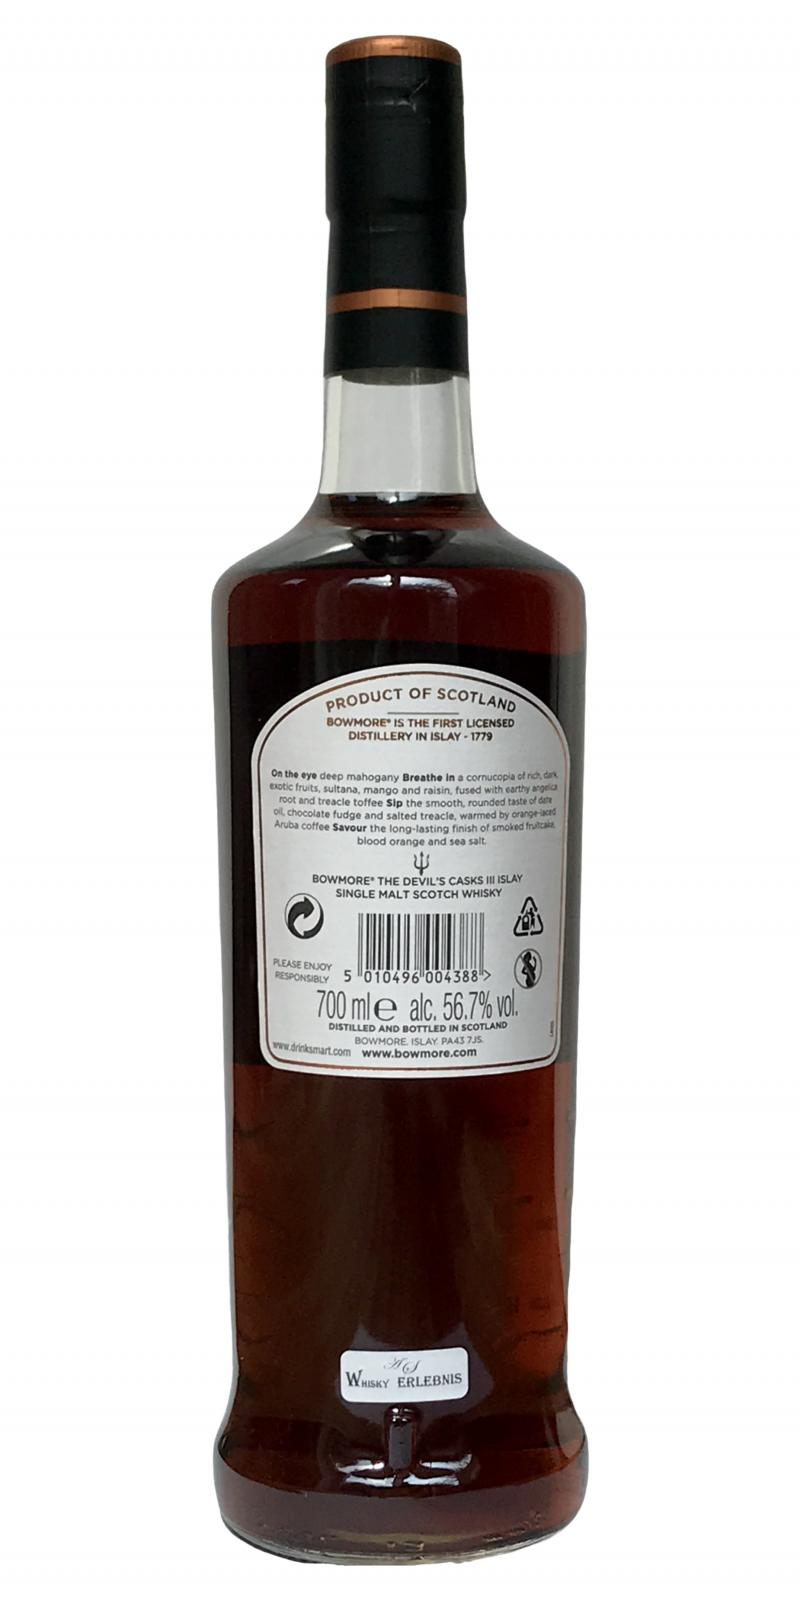 Bowmore The Devil's Casks - Limited Release III